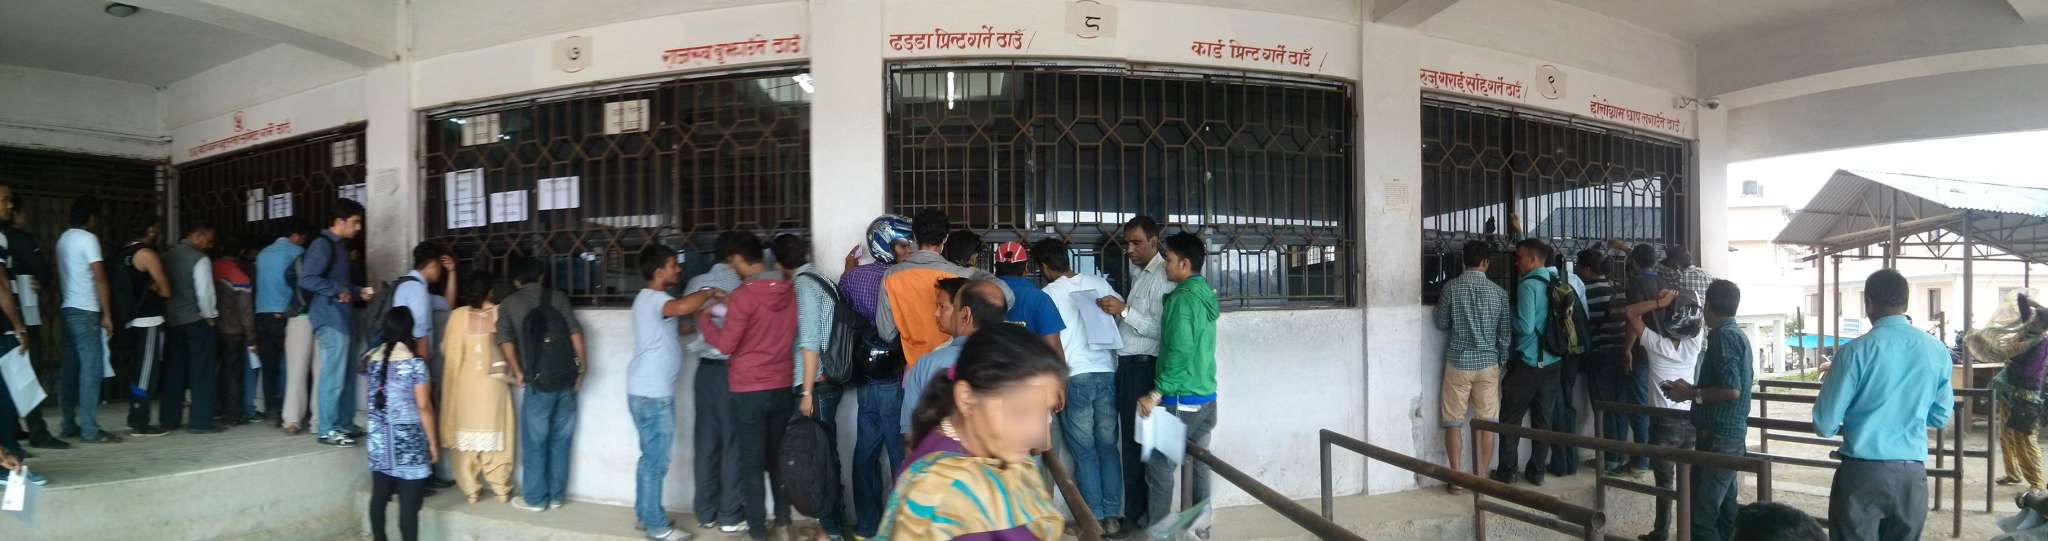 Lines For License Renewal In Diffe Rooms And Windows